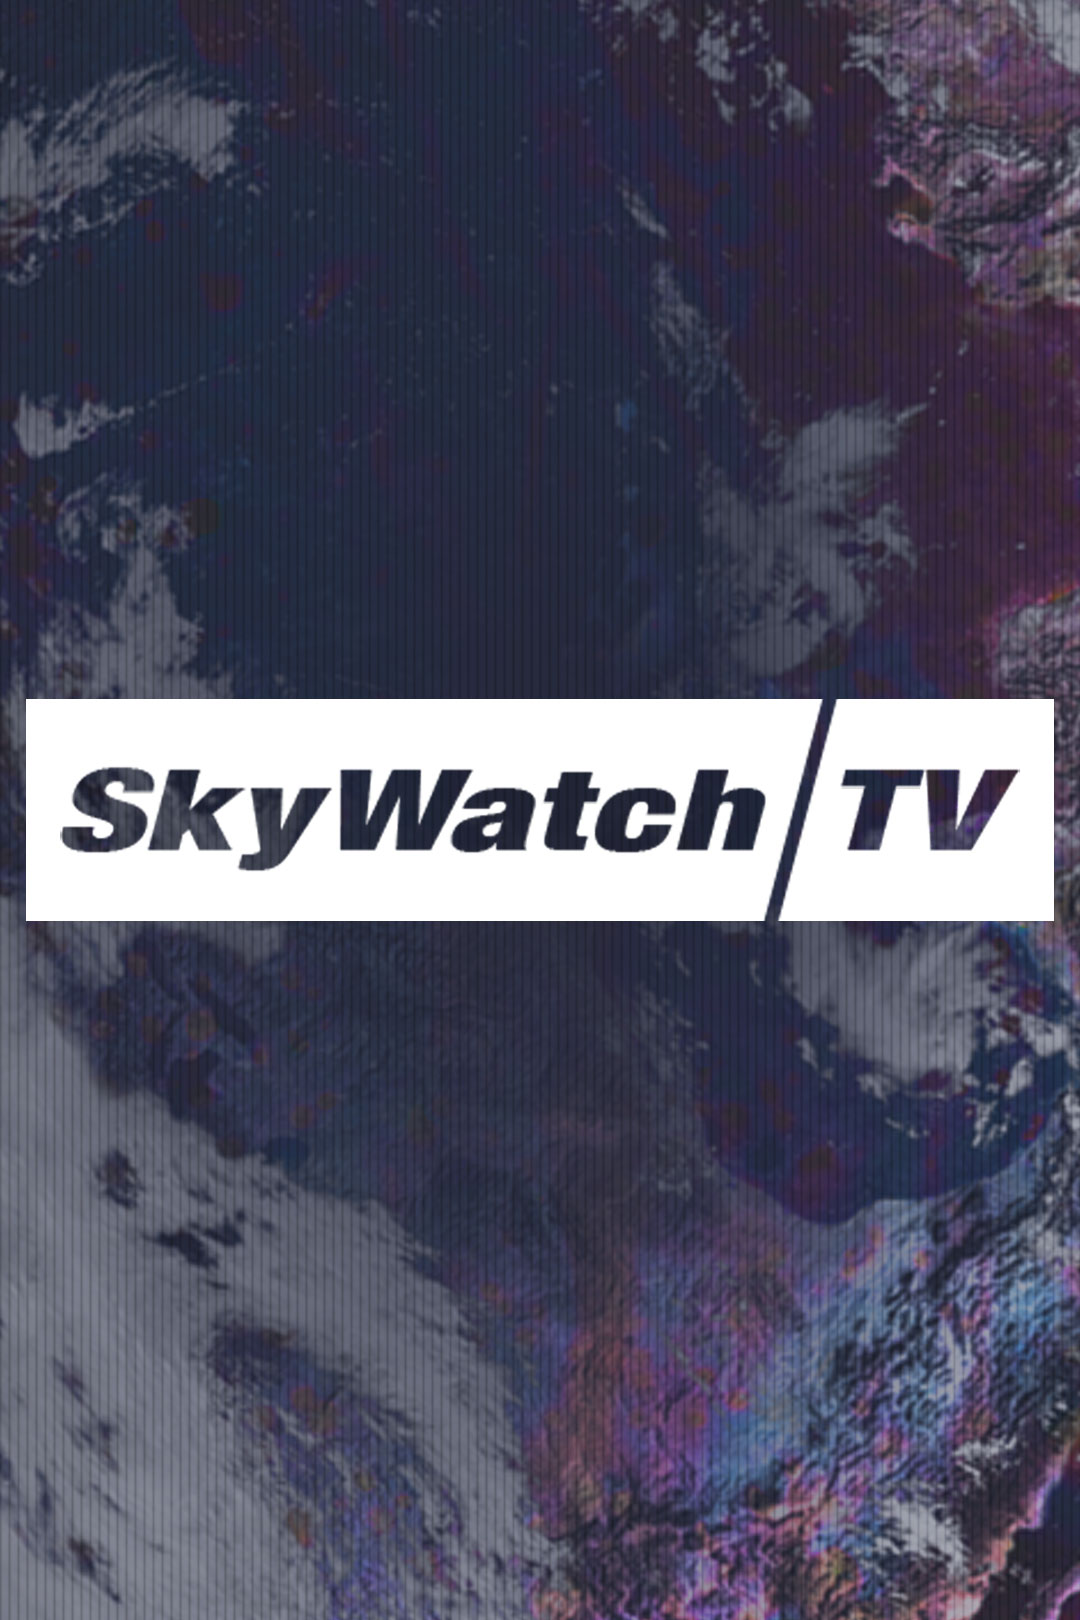 SkyWatch TV